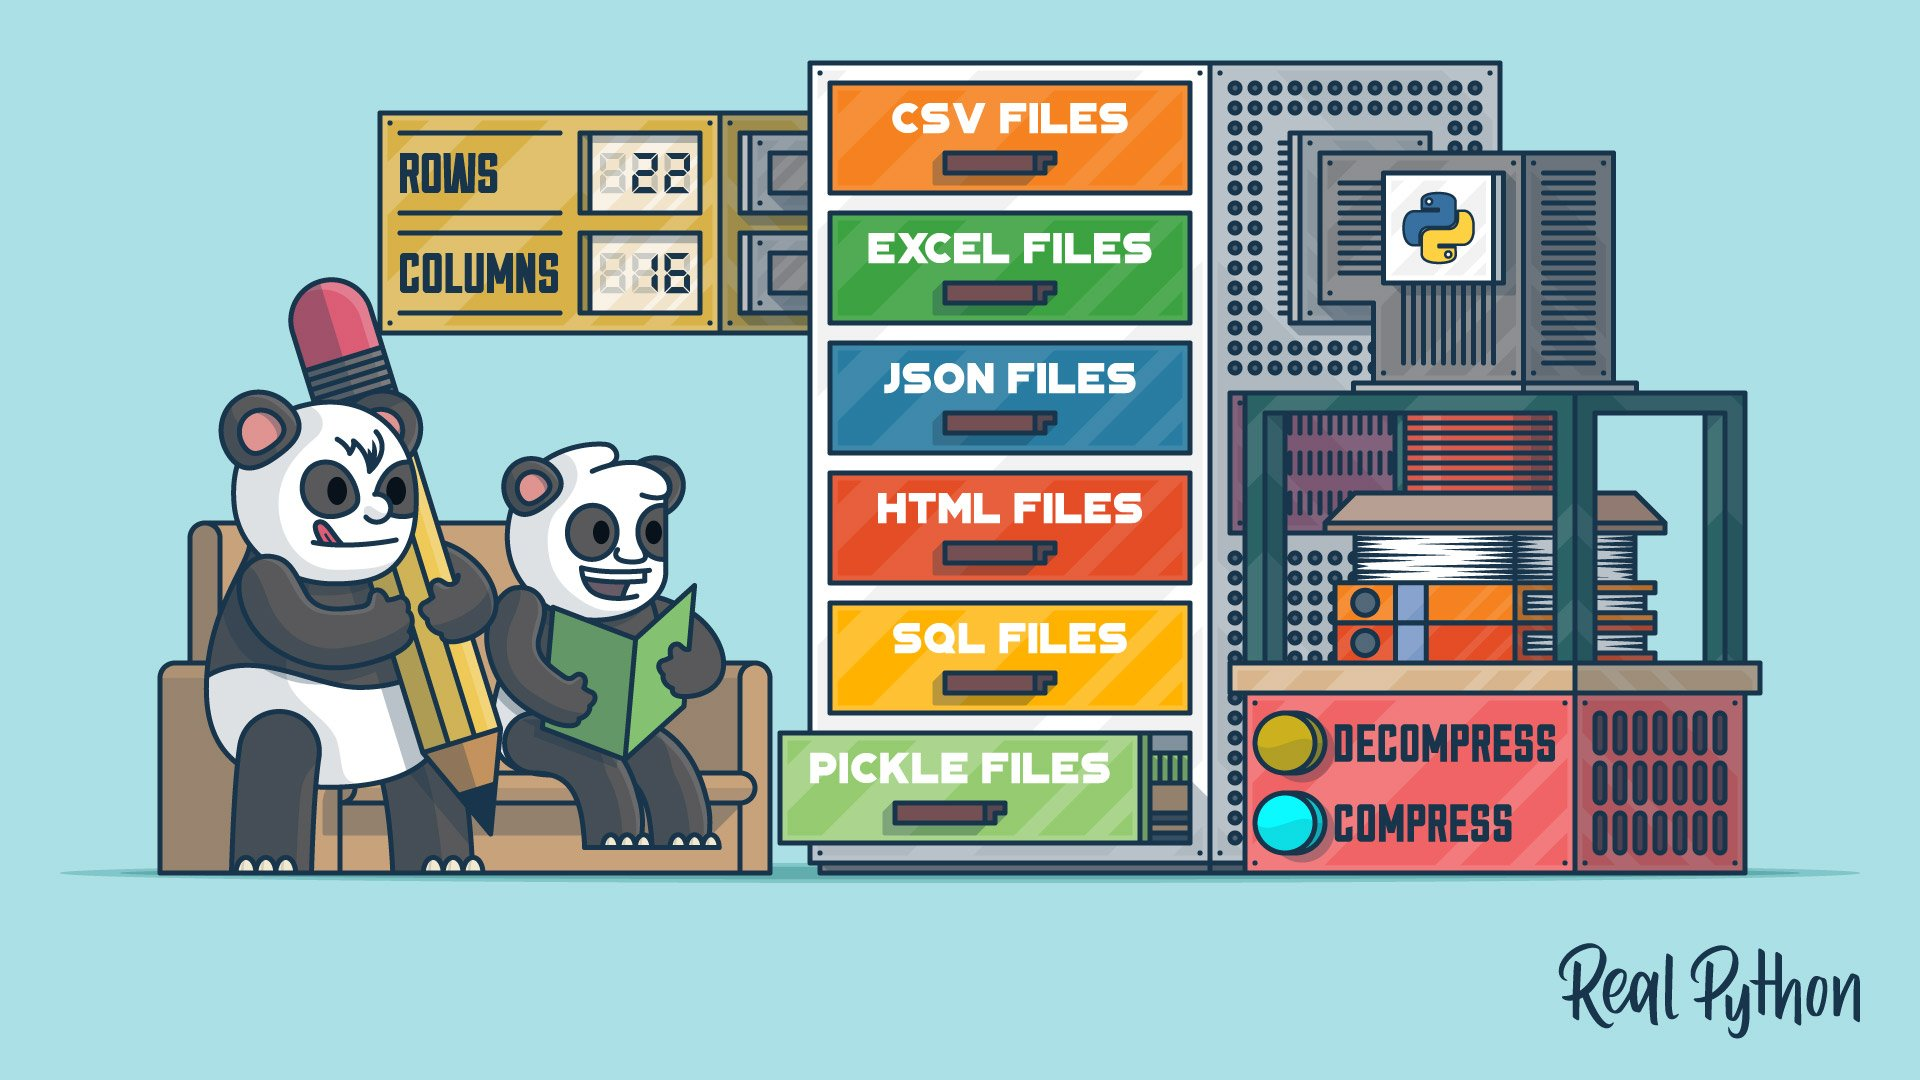 Pandas: How to Read and Write Files